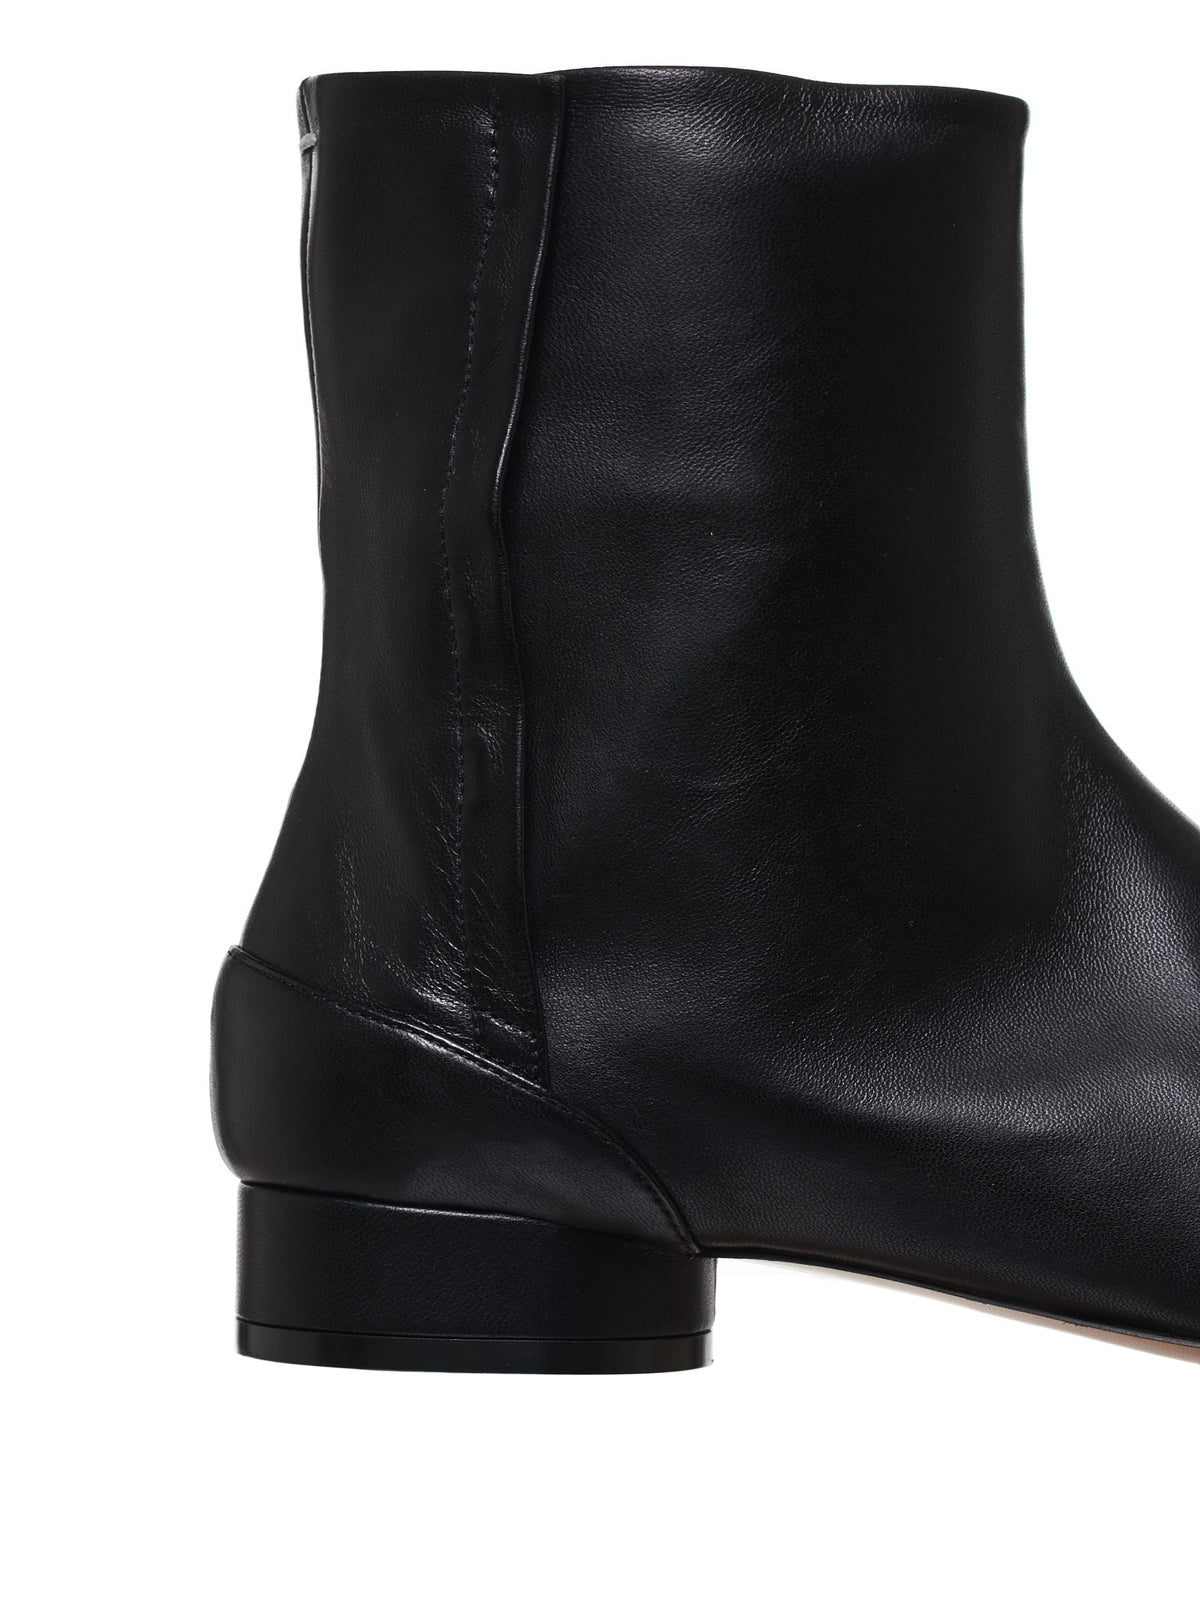 4-Stitches Leather Ankle Boots (S58WU0280-PR869-T8013-BLACK)